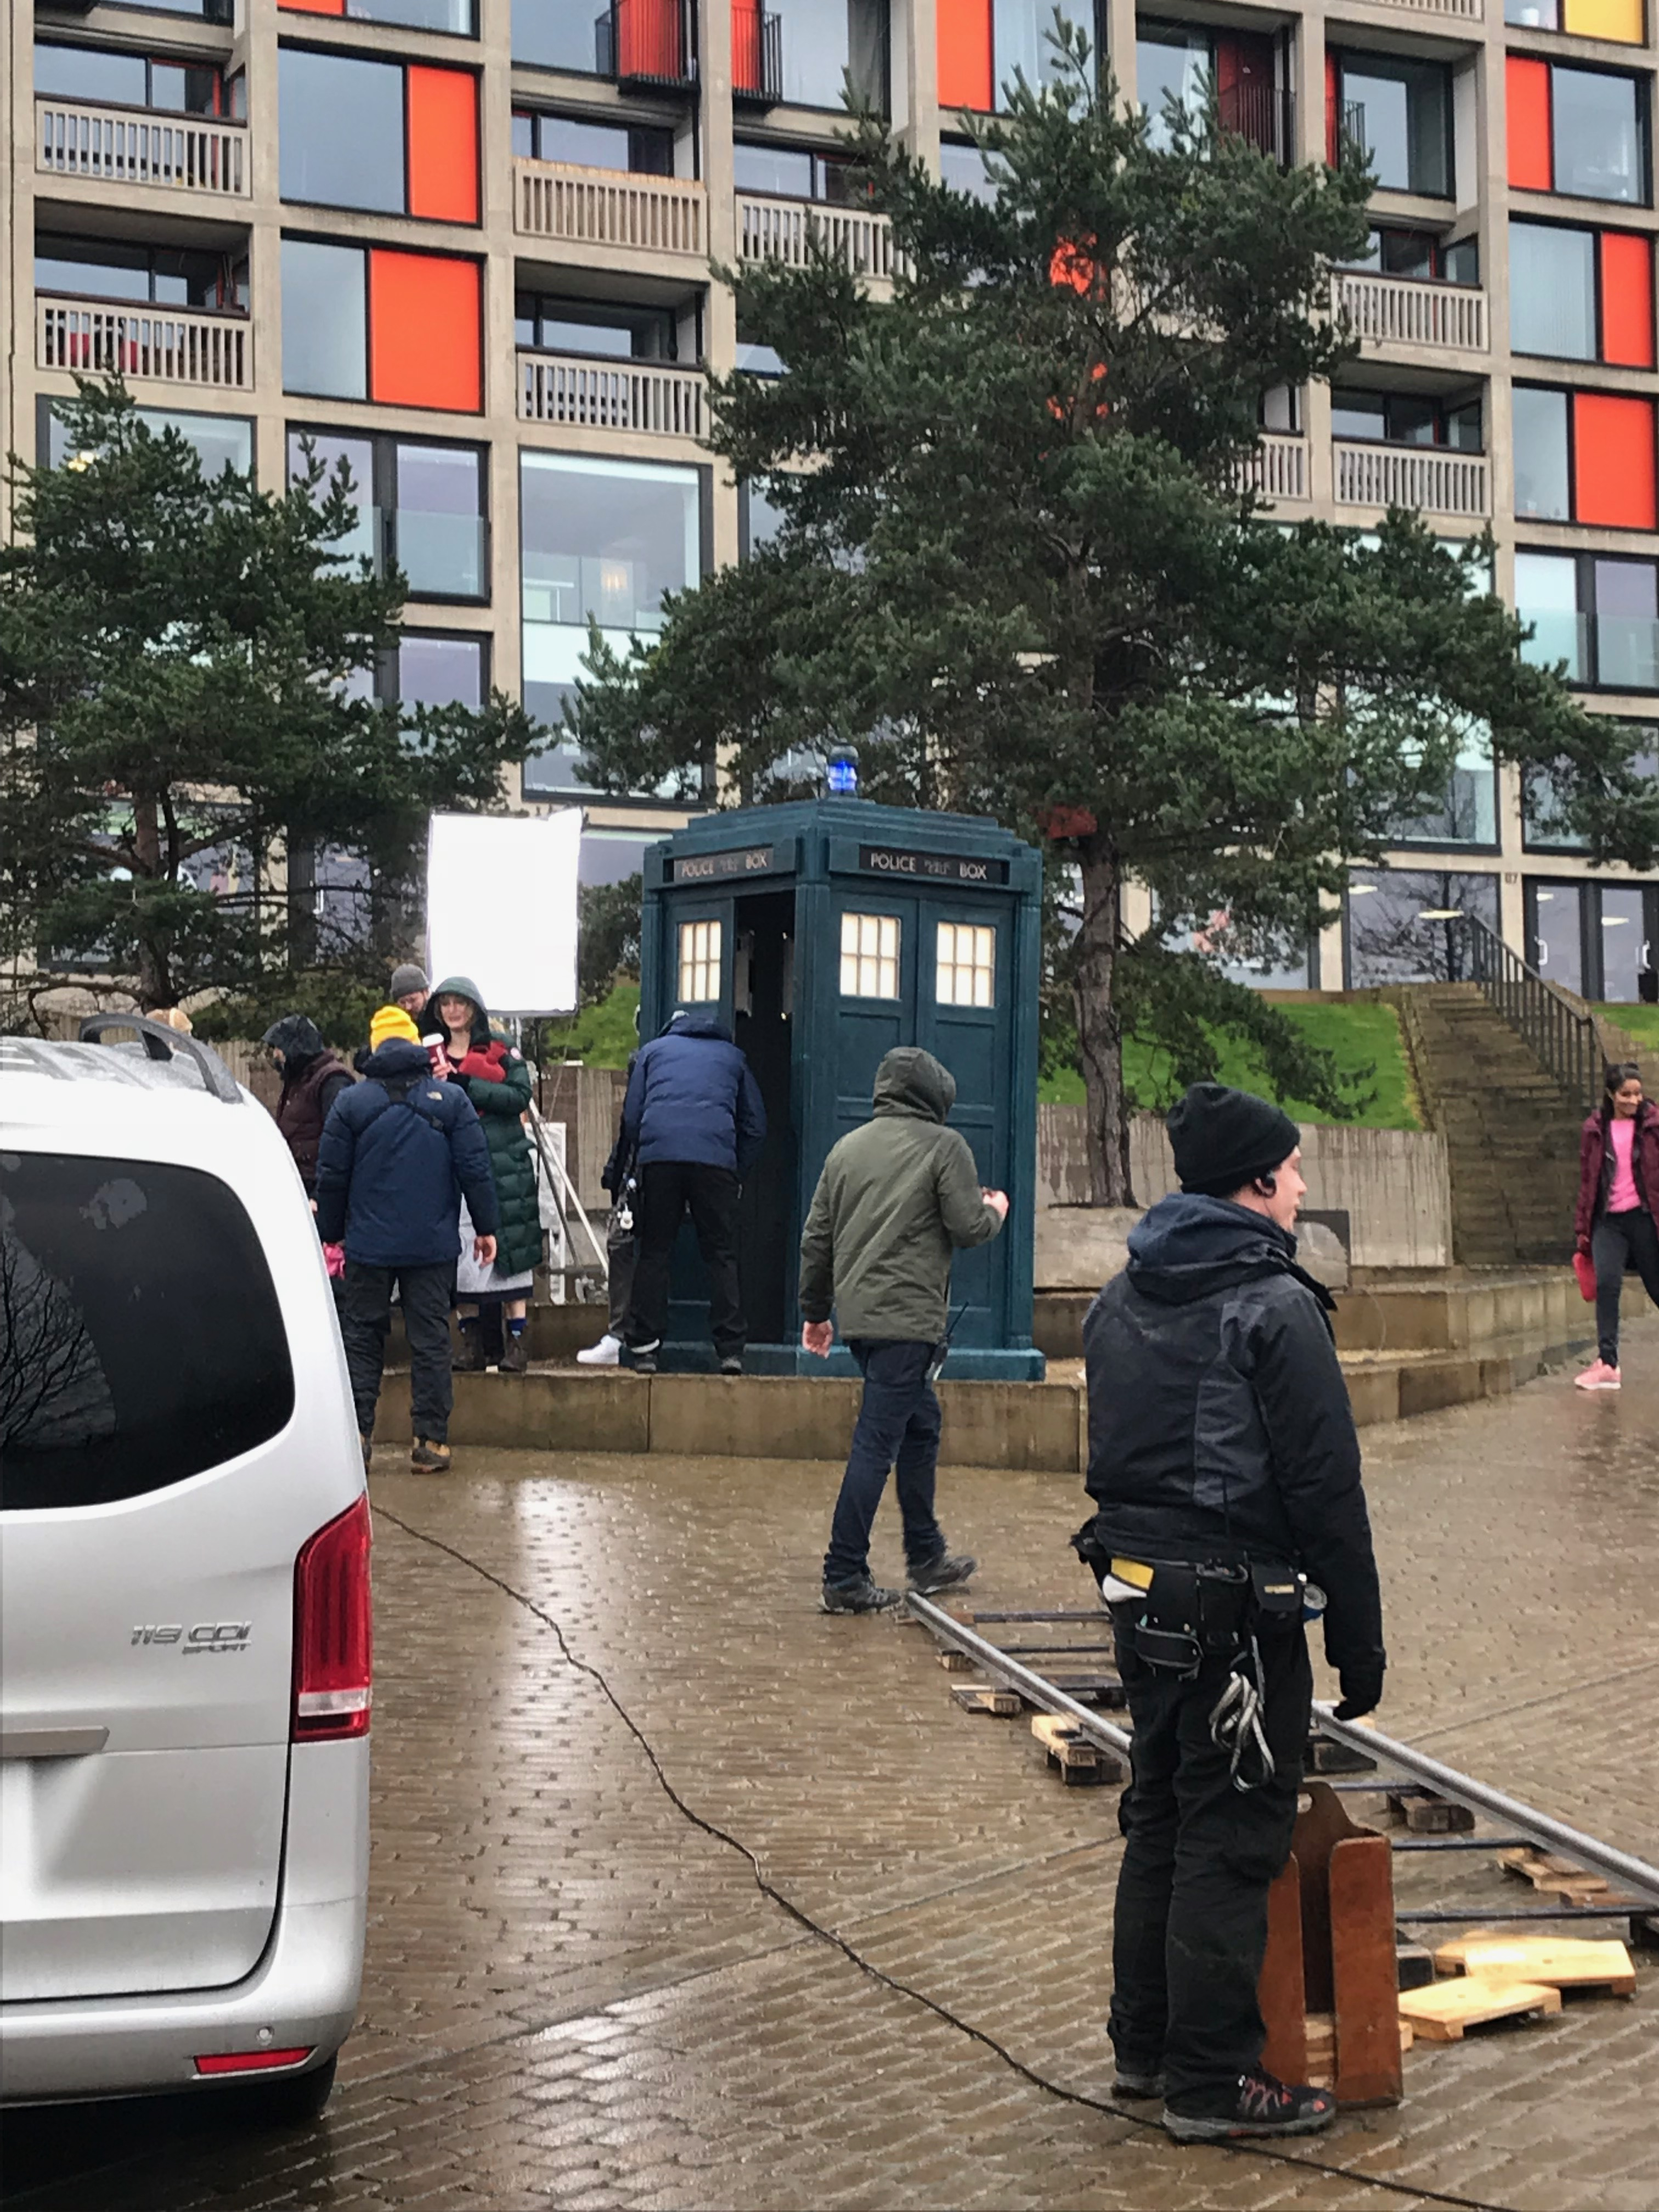 doctor-who-filming-sheffield-2018_39349484415_o